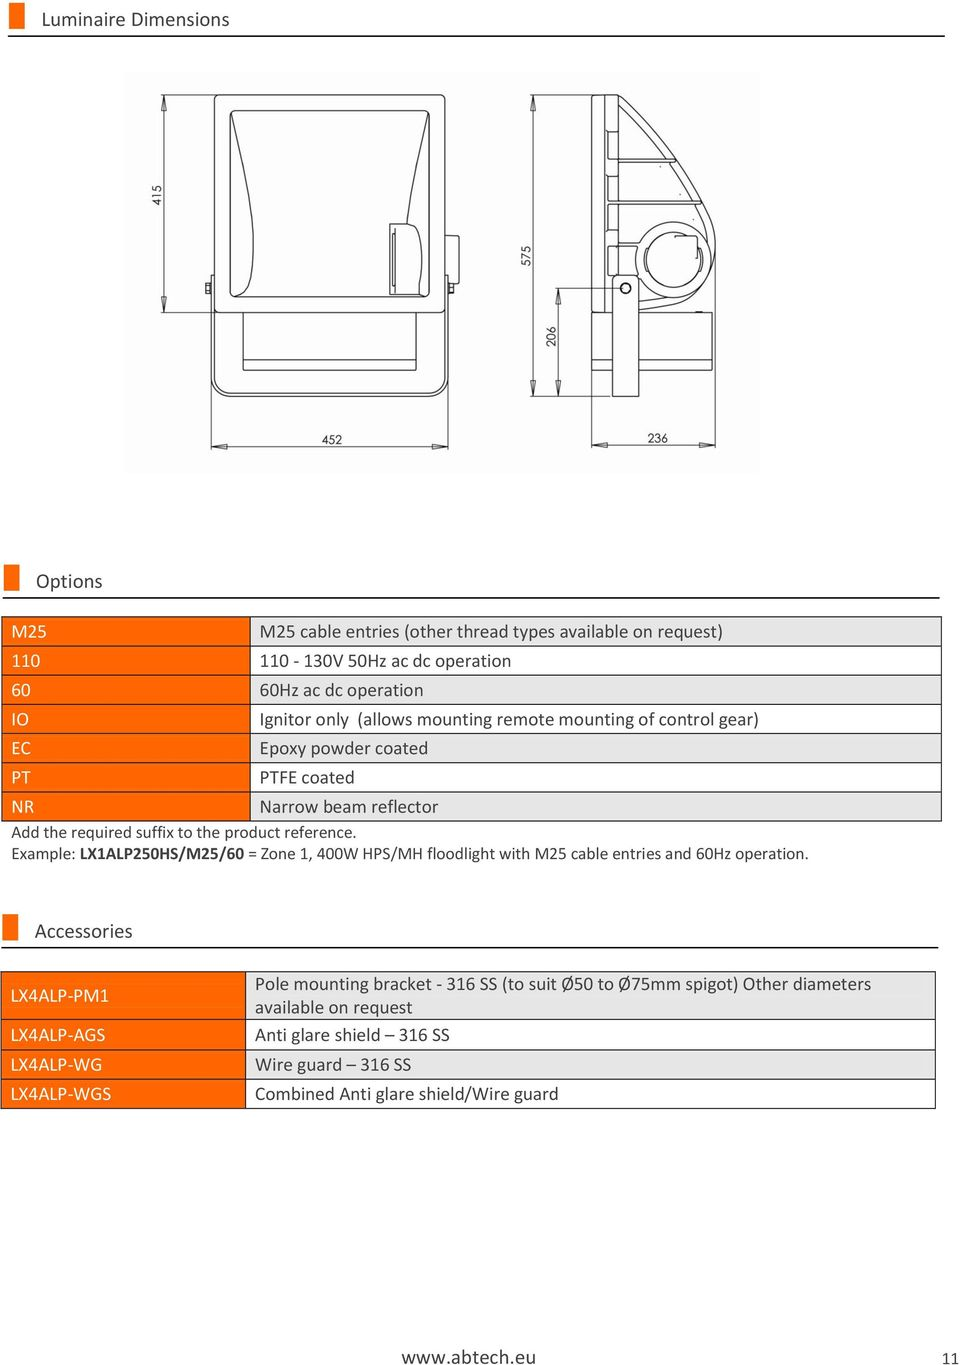 Example: LX1ALP250HS/M25/60 = Zone 1, 400W HPS/MH floodlight with M25 cable entries and 60Hz operation.